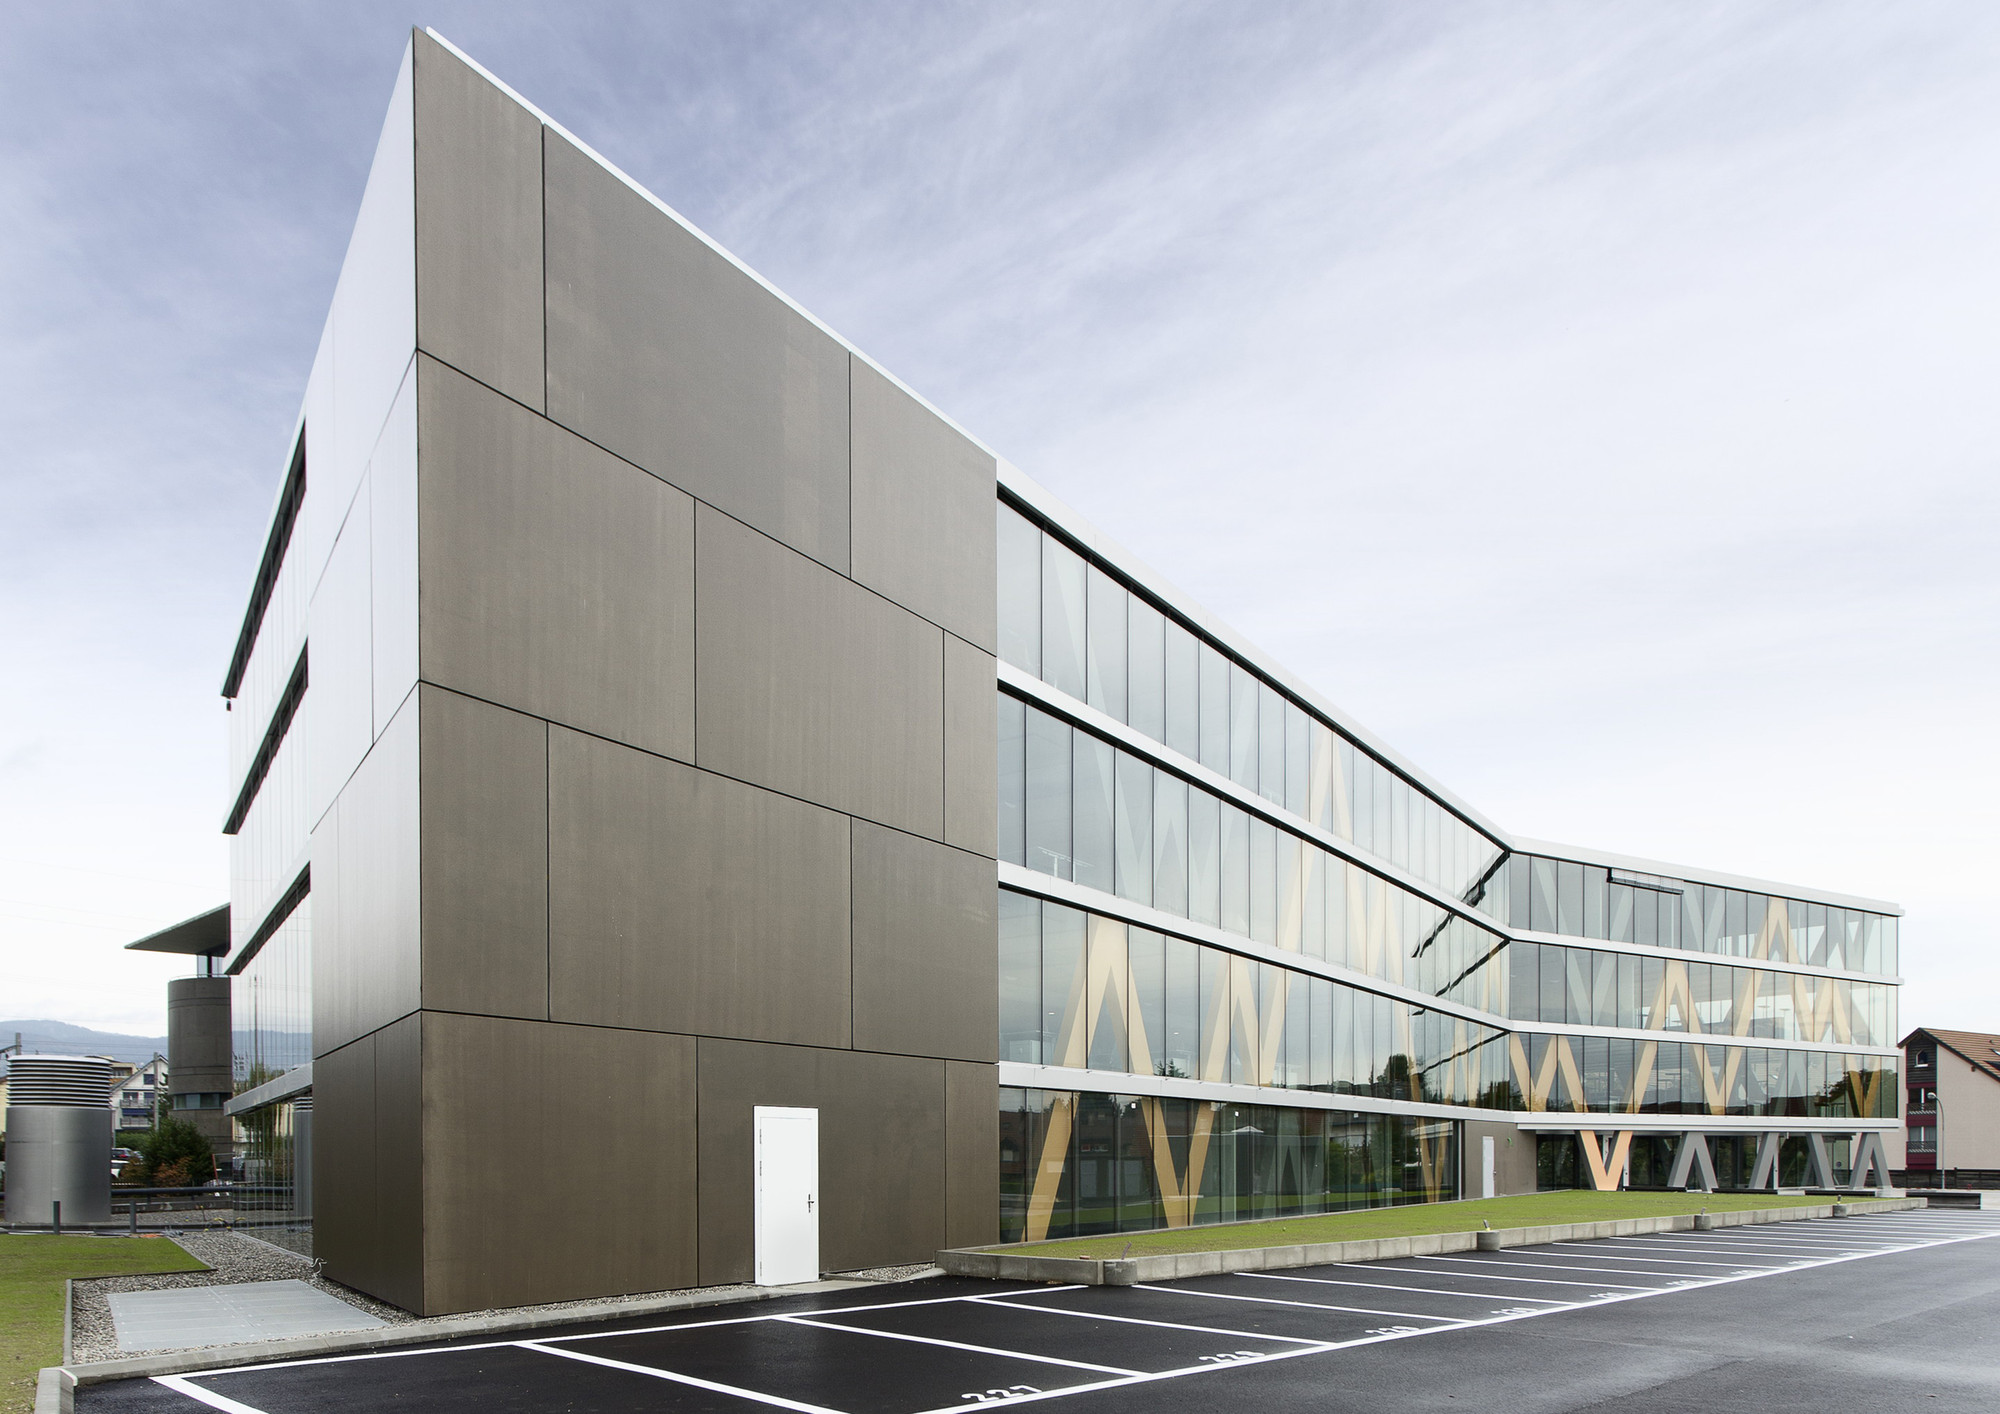 Swissquote Building in Gland  / Link architectes, © Swissquote Bank